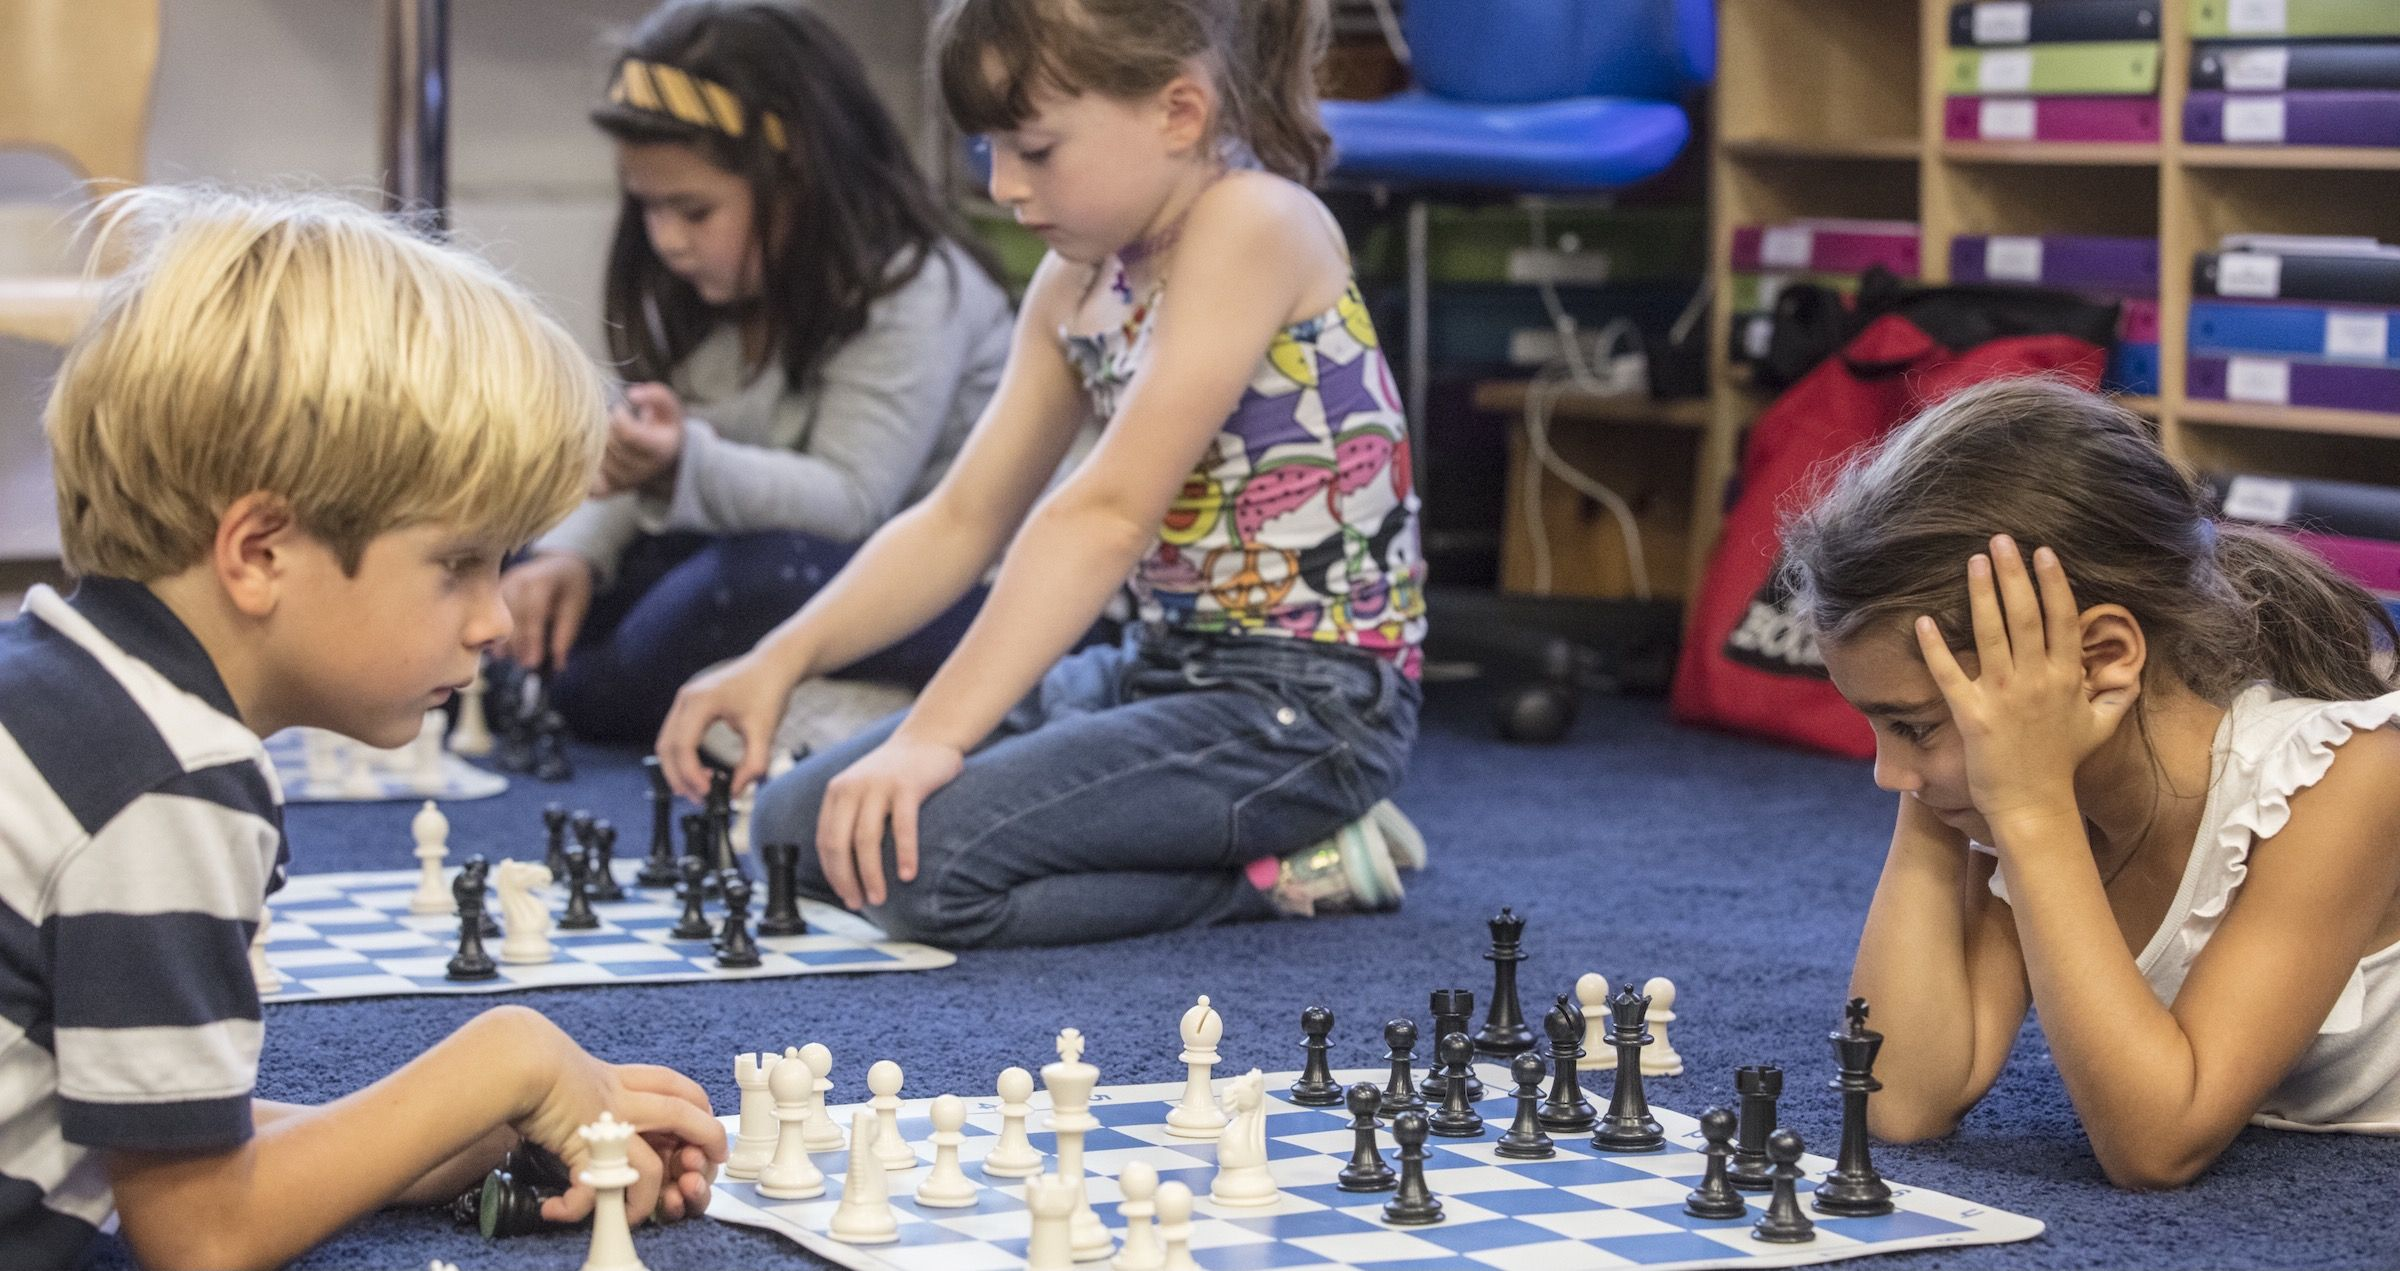 Our chess curriculum is integrated into Grades K-3 classes and features a world-class trophy-winning chess team after school.